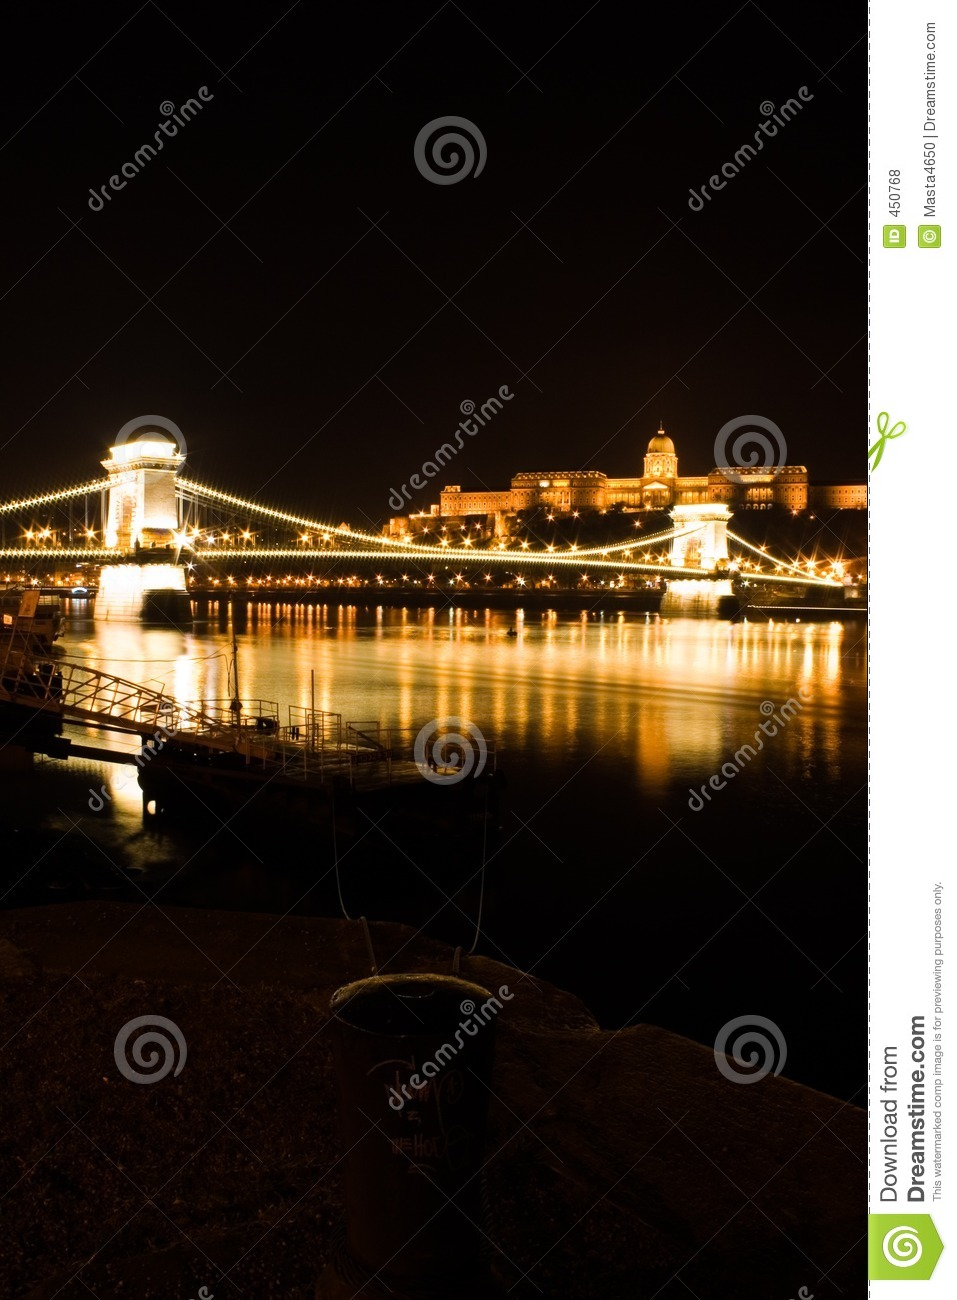 Download Budapest Chain Bridge And Castle Stock Photo - Image of dock, reflection: 450768